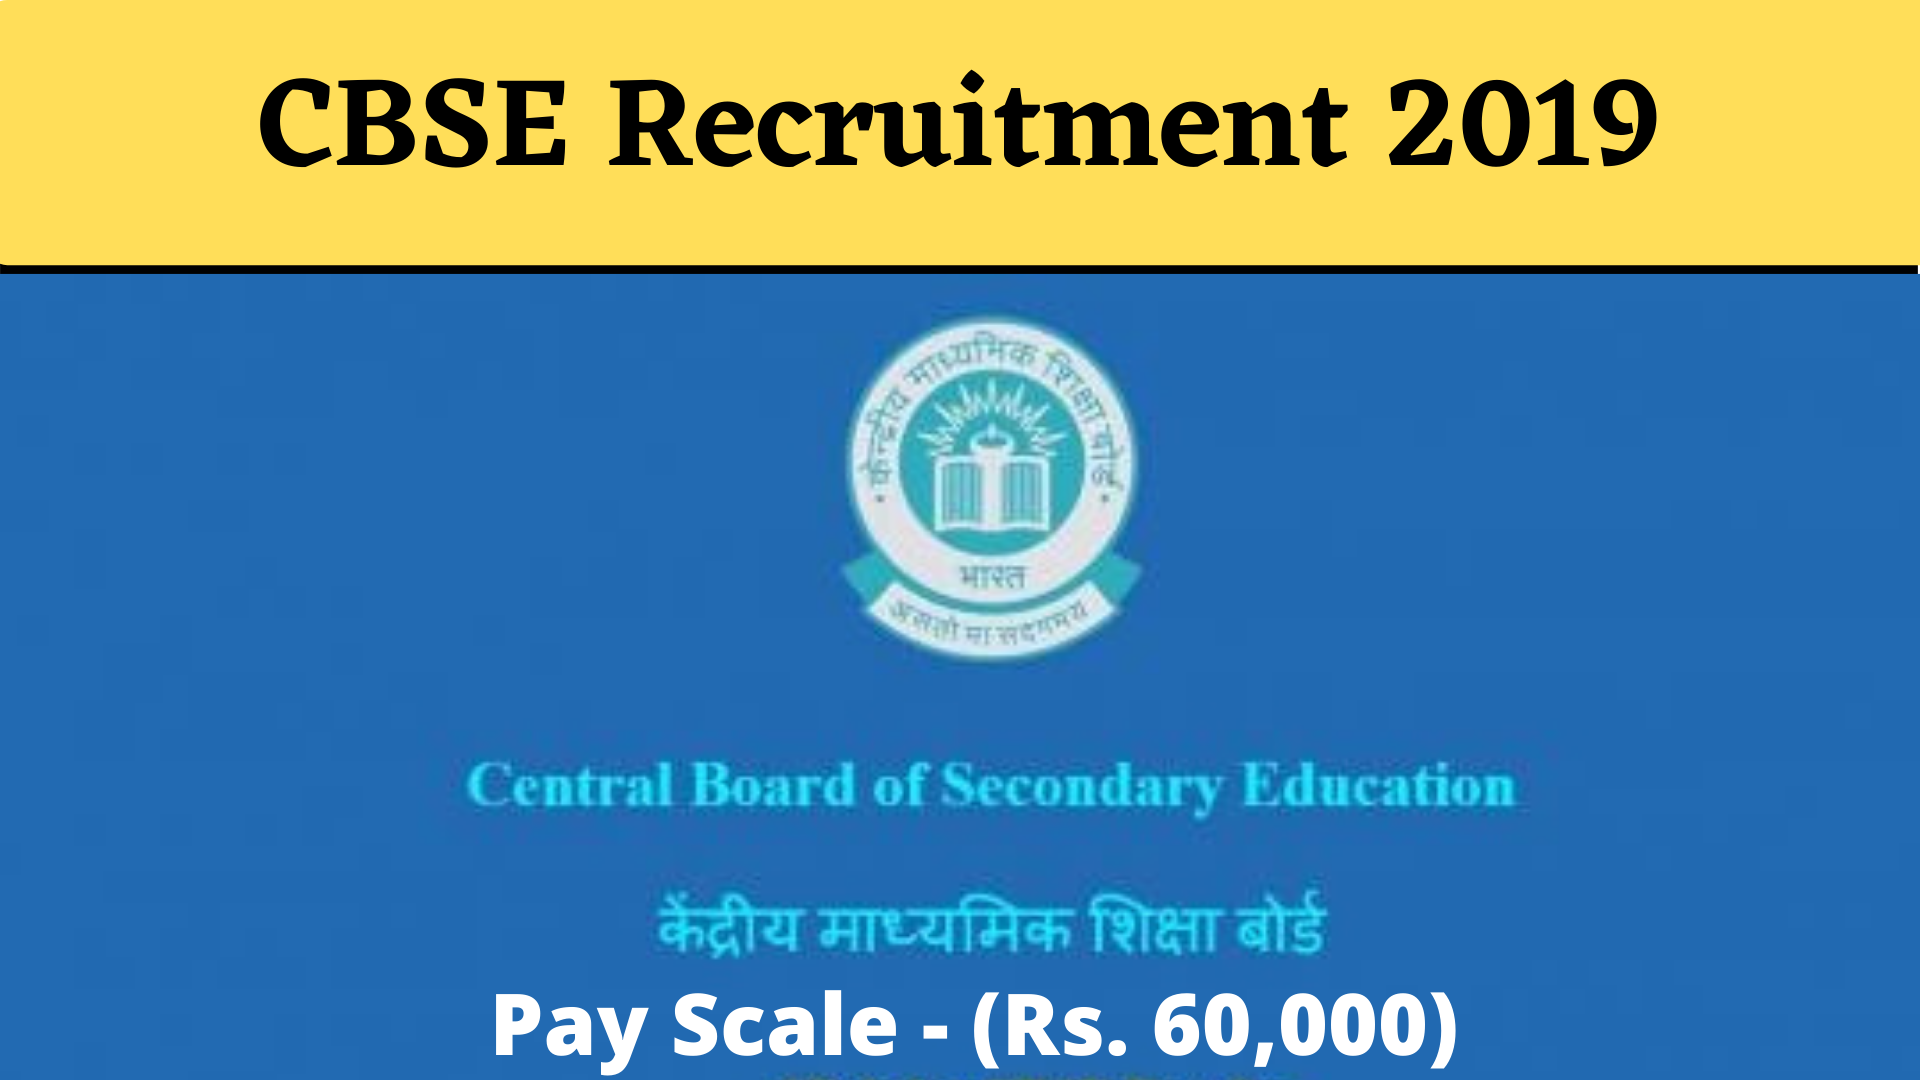 CBSE Recruitment 2019